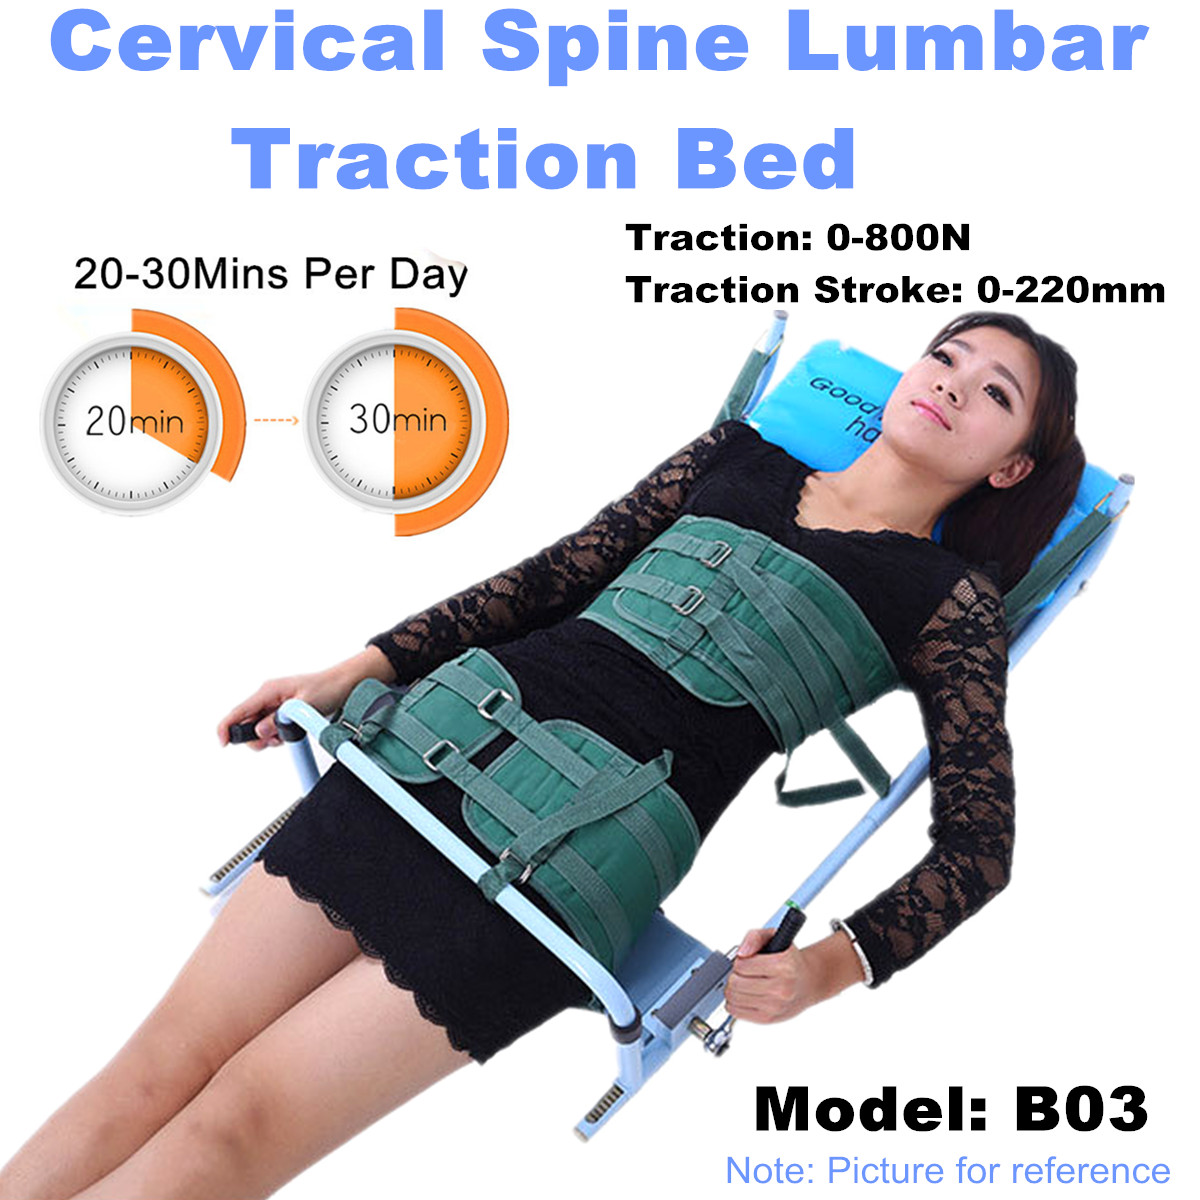 Body Stretching Device Cervical Spine Lumbar Spine Traction Bed Therapy Massage for Neck & Lumbar Reduce Spine Joint Pressure healthcare gynecological multifunction treat for cervical erosion private health women laser device